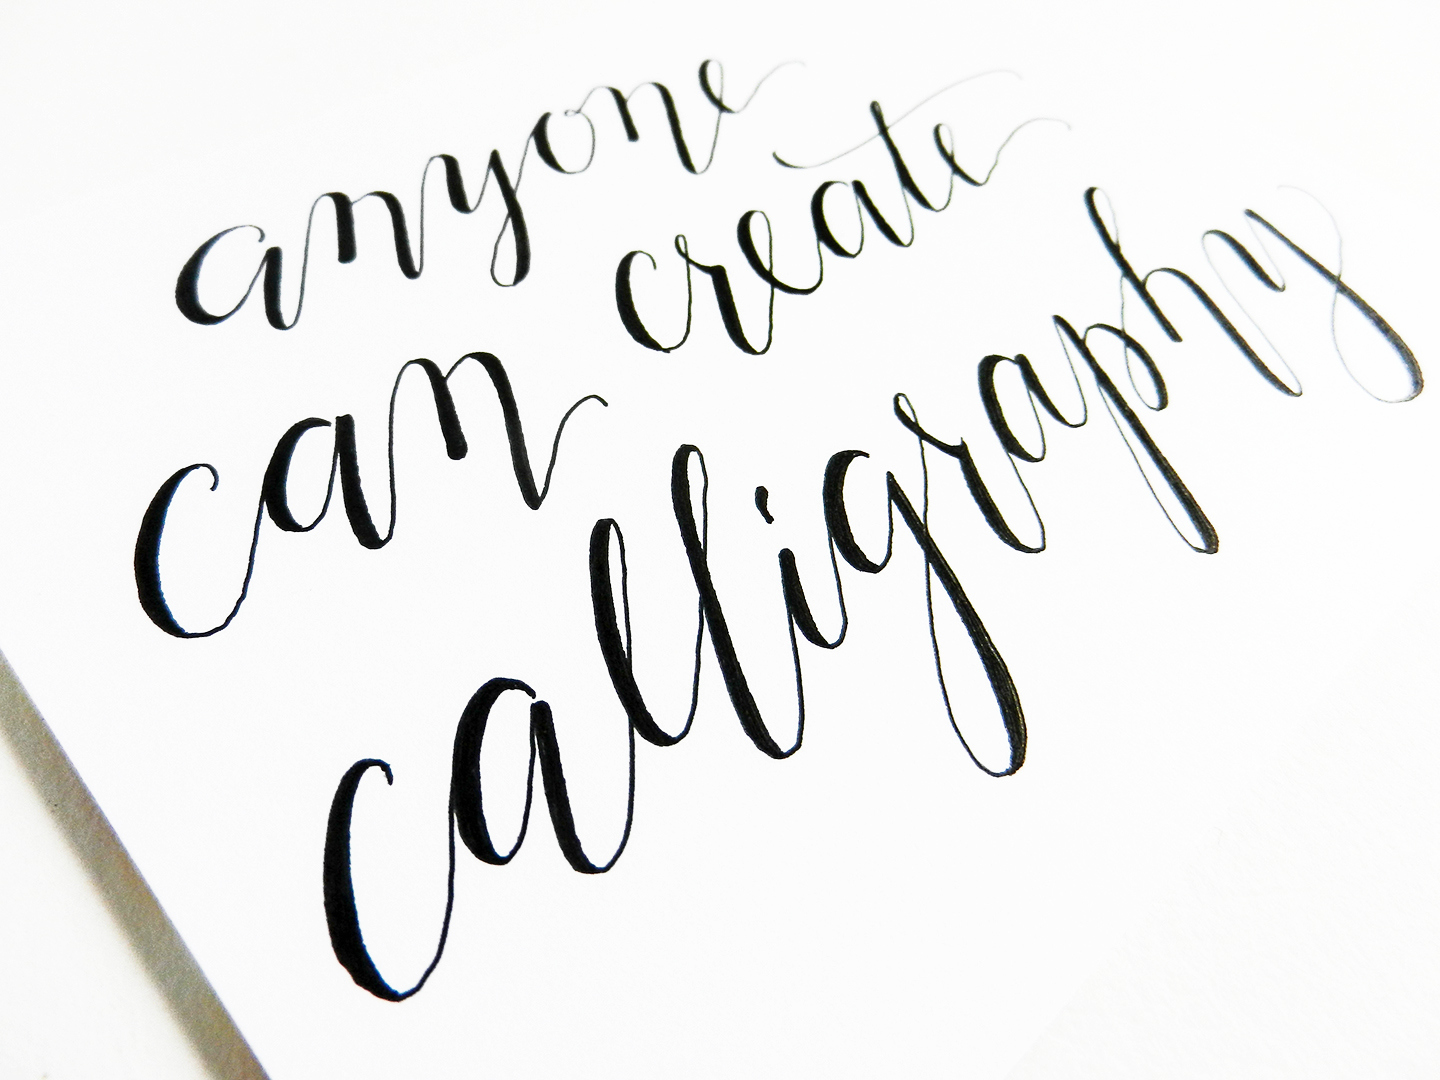 How to write thank you in calligraphy cliparts